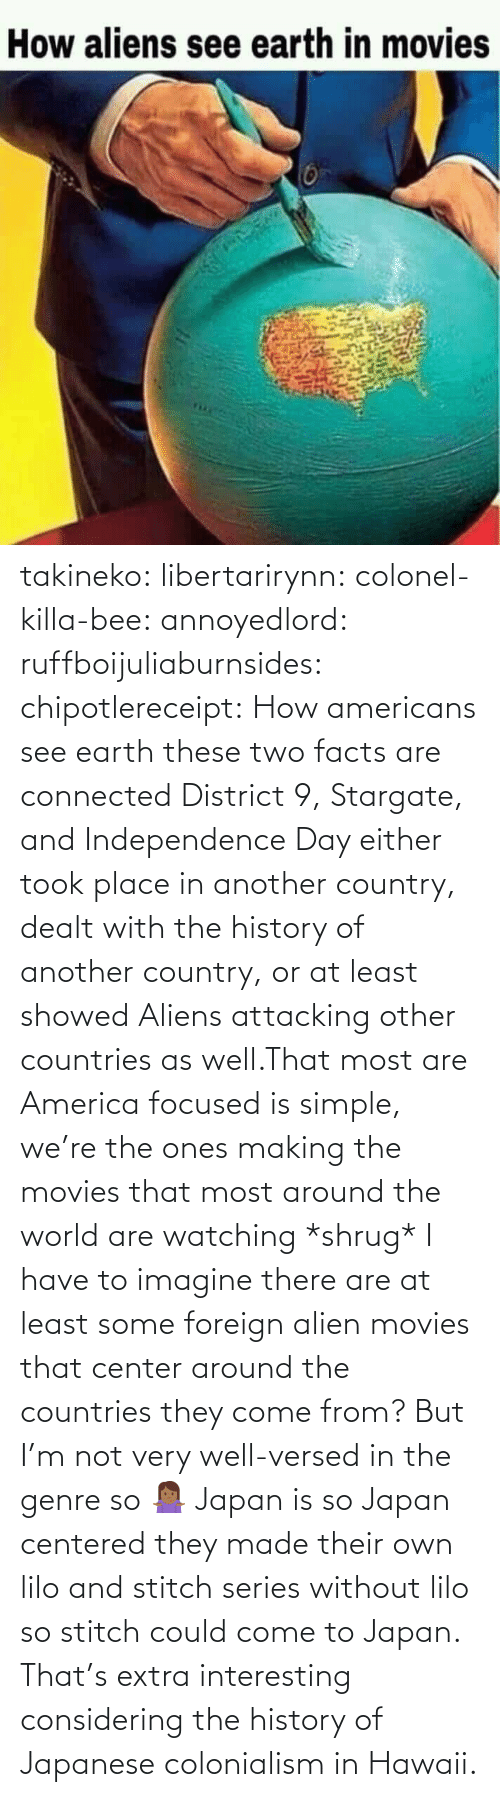 Showed: takineko:  libertarirynn:  colonel-killa-bee:  annoyedlord: ruffboijuliaburnsides:  chipotlereceipt: How americans see earth these two facts are connected     District 9, Stargate, and Independence Day either took place in another country, dealt with the history of another country, or at least showed Aliens attacking other countries as well.That most are America focused is simple, we're the ones making the movies that most around the world are watching *shrug*   I have to imagine there are at least some foreign alien movies that center around the countries they come from? But I'm not very well-versed in the genre so 🤷🏾‍♀️   Japan is so Japan centered they made their own lilo and stitch series without lilo so stitch could come to Japan.    That's extra interesting considering the history of Japanese colonialism in Hawaii.